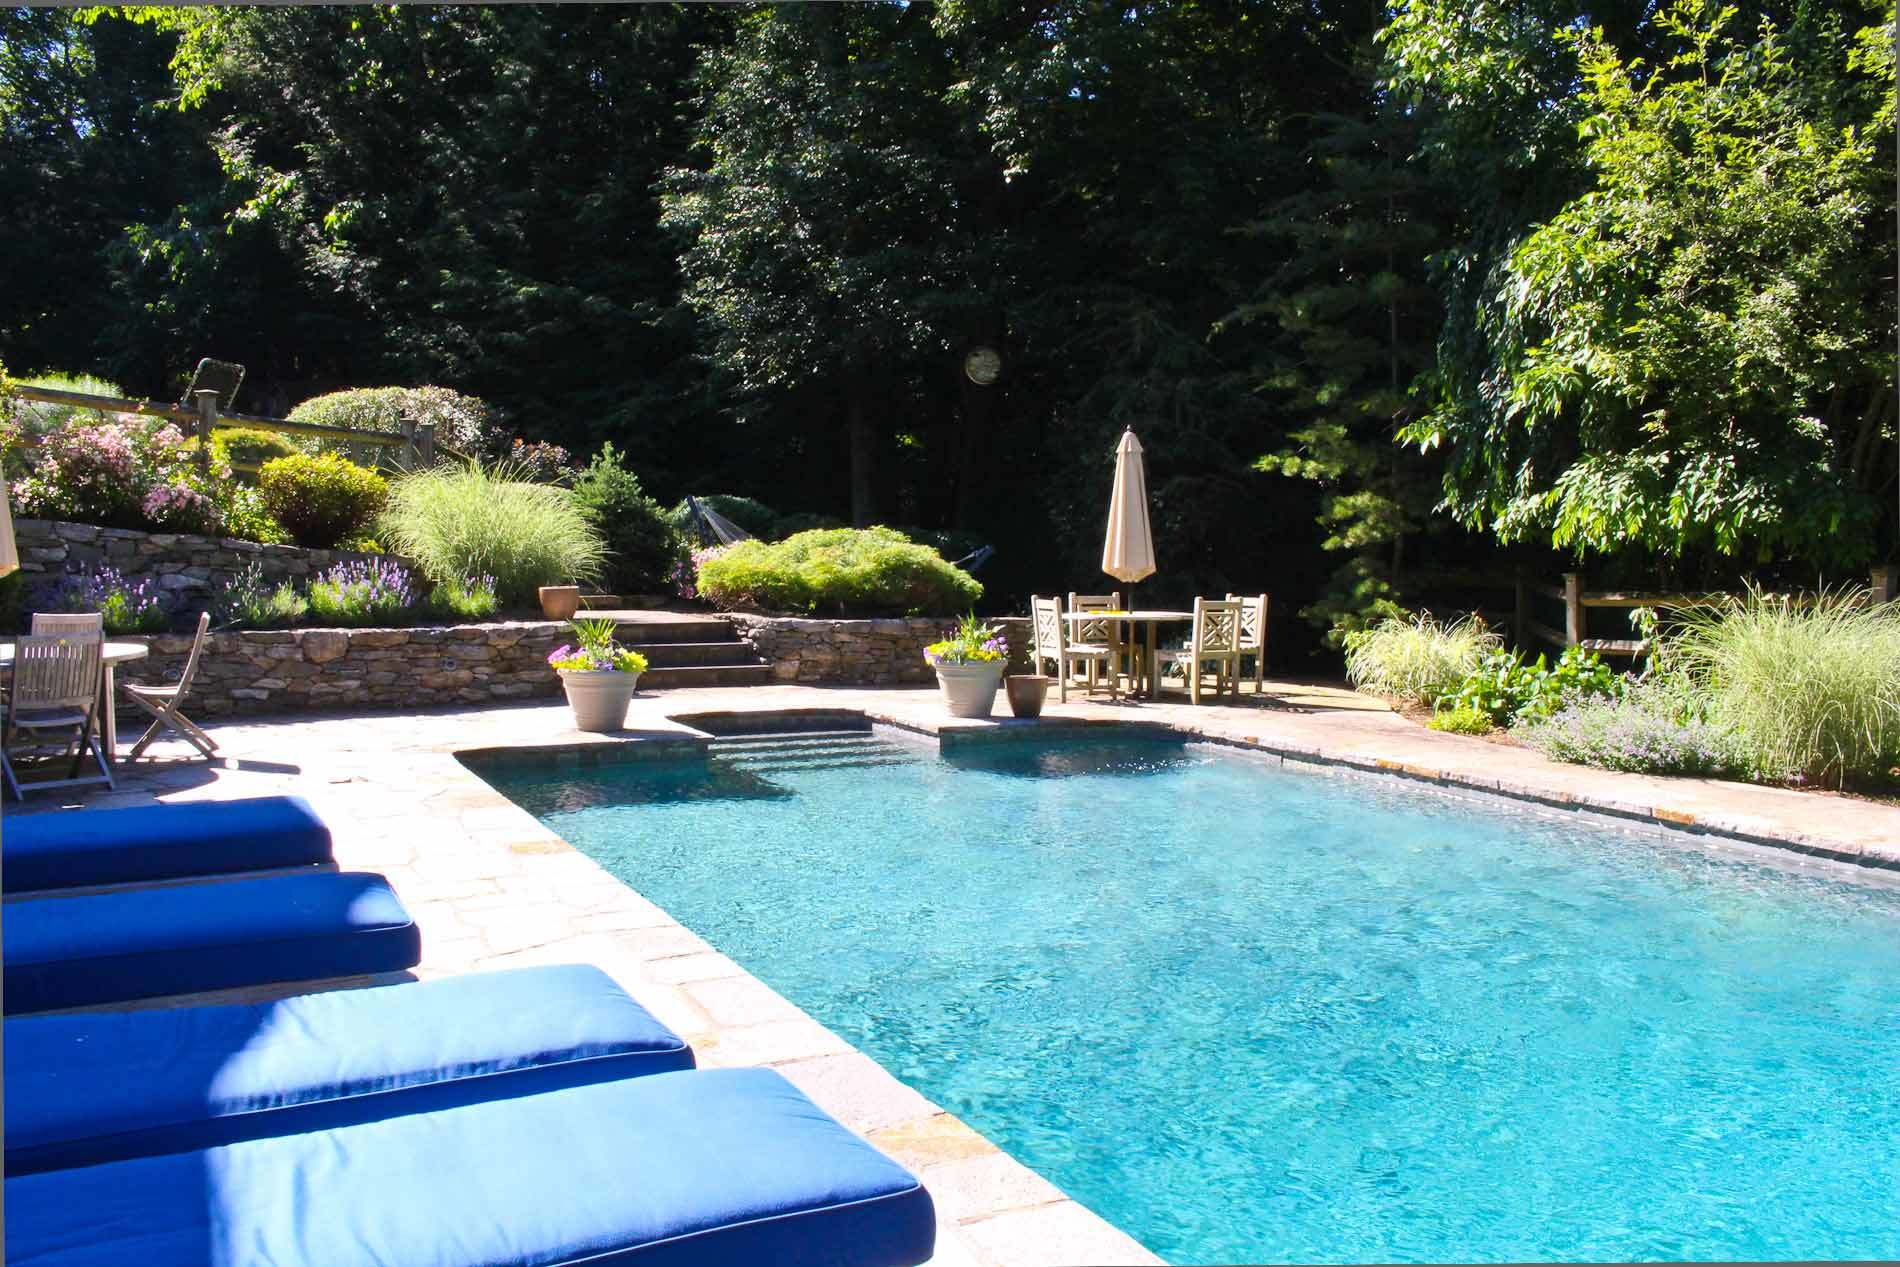 Homes with swimming pool for sale in fairfield ct find and buy houses with pool dagny 39 s real Red house hotel swimming pool